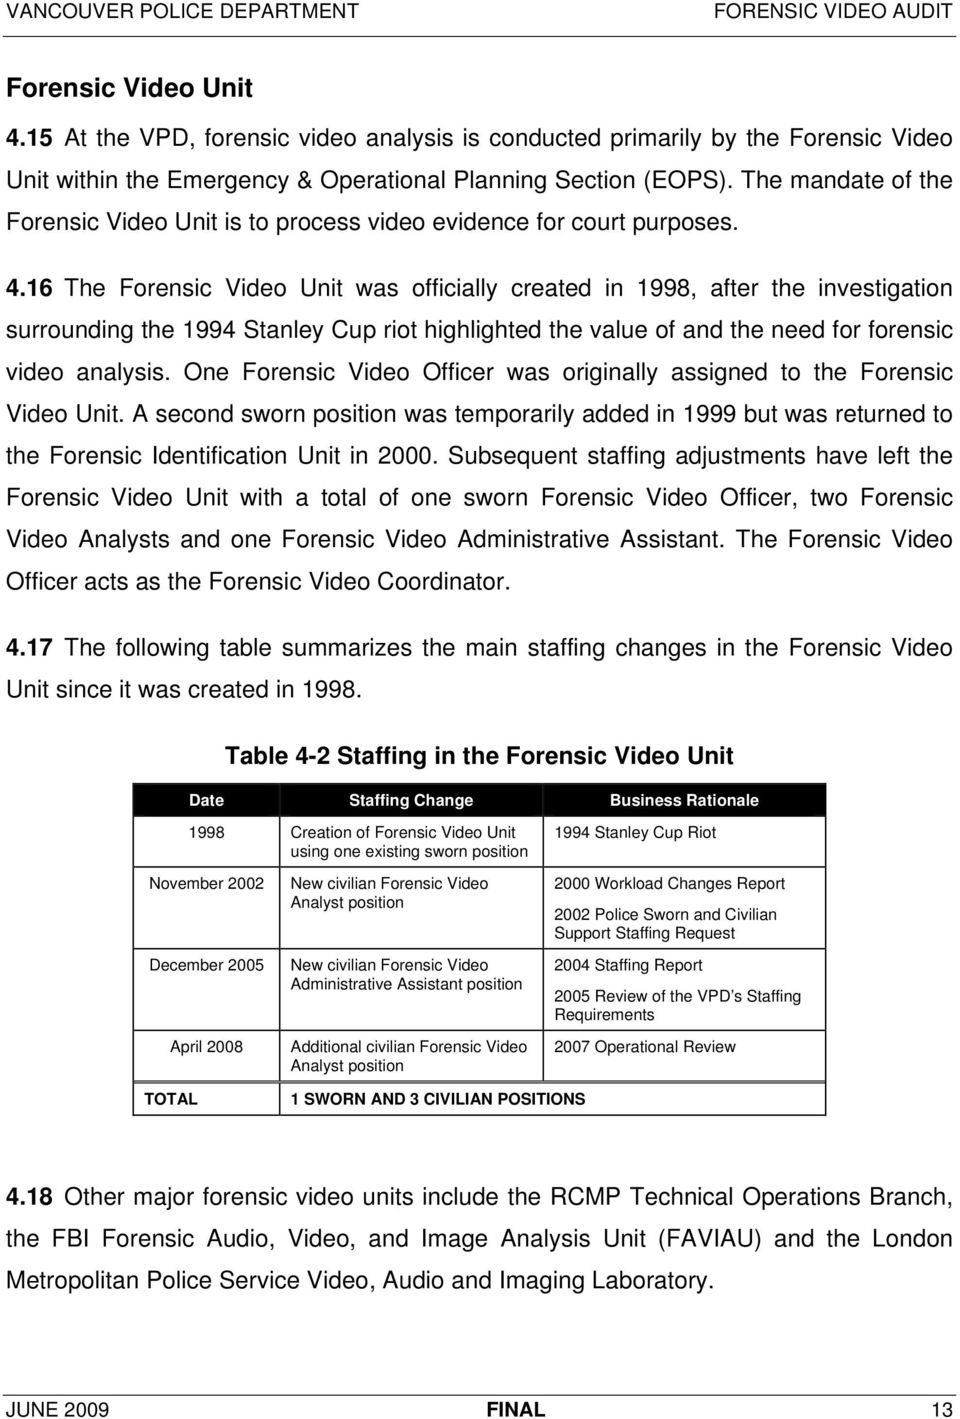 16 The Forensic Video Unit was officially created in 1998, after the investigation surrounding the 1994 Stanley Cup riot highlighted the value of and the need for forensic video analysis.